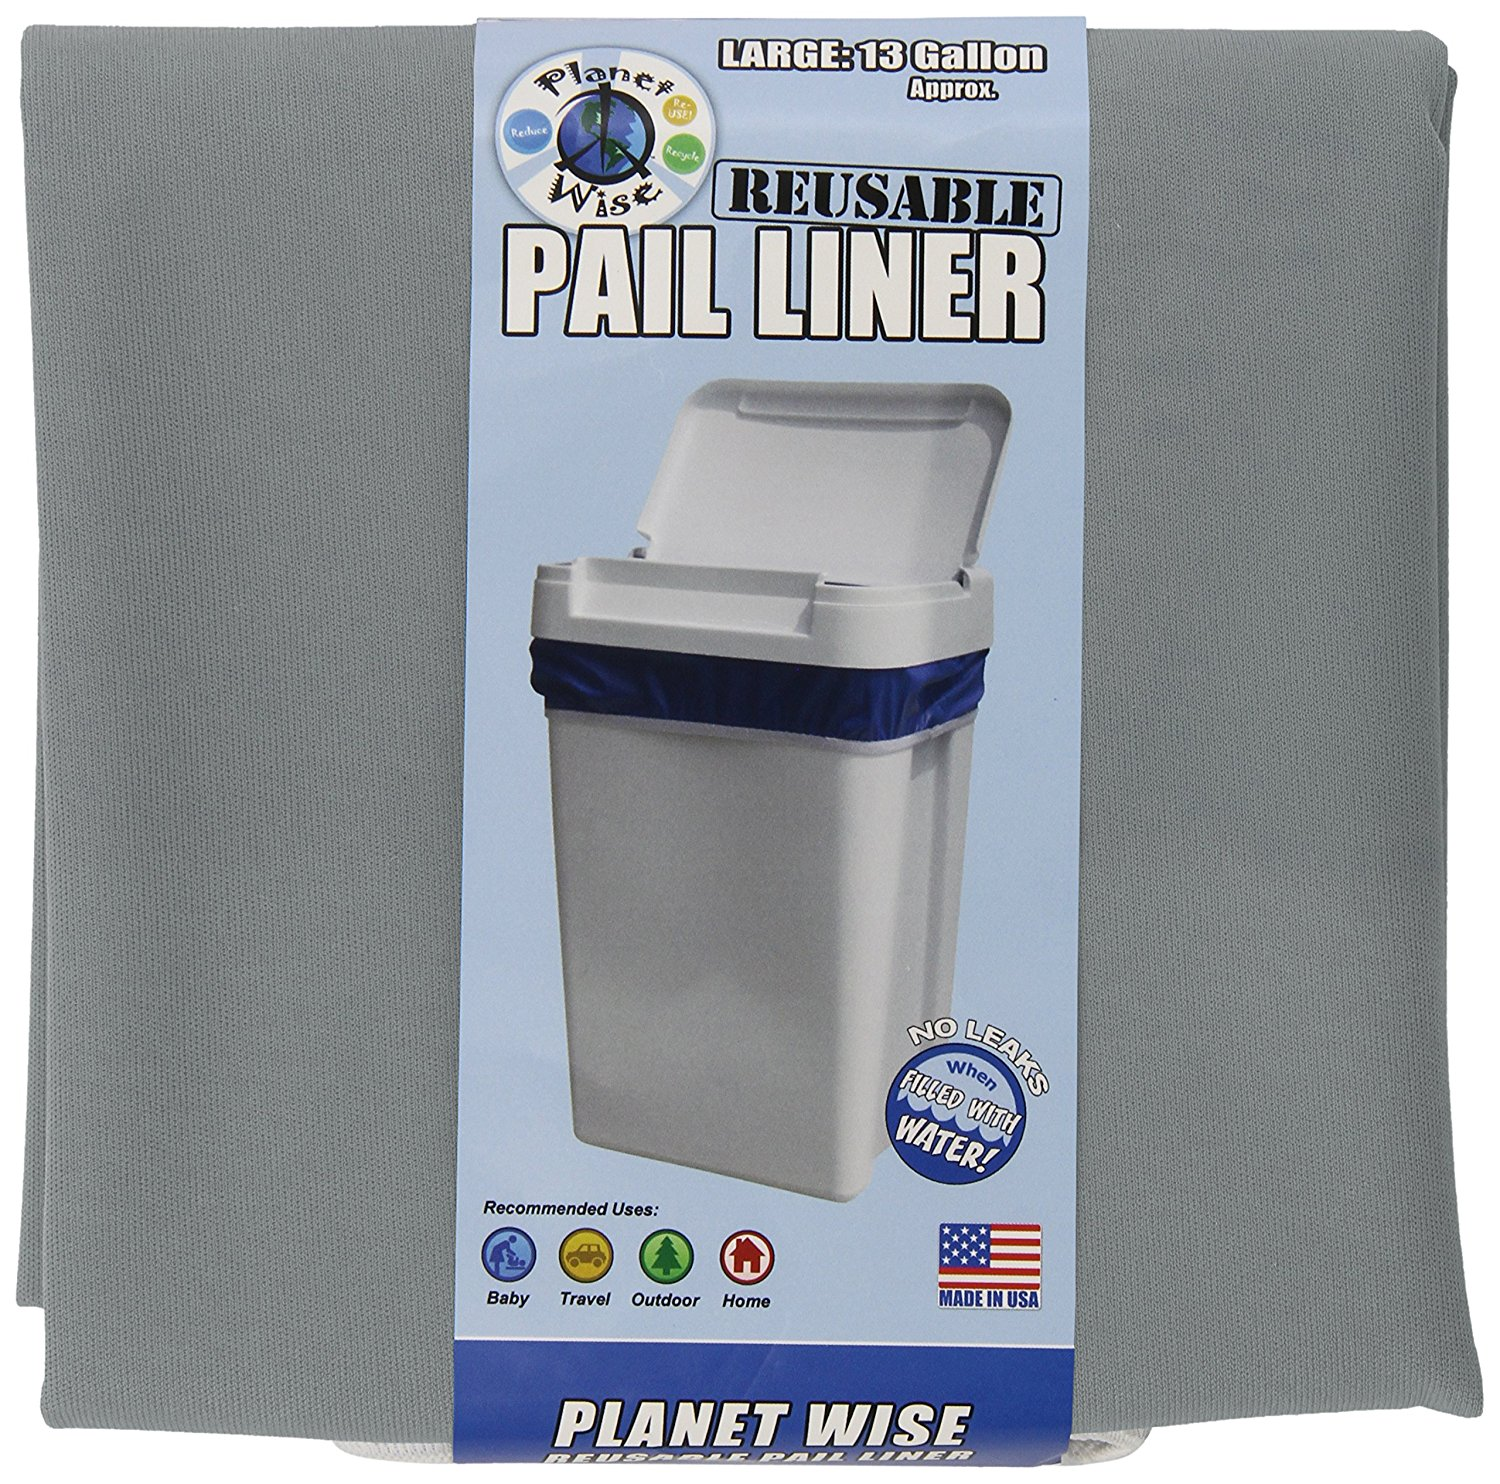 Reusable Diaper Pail Liner, Slate, USA, Brand Planet Wise